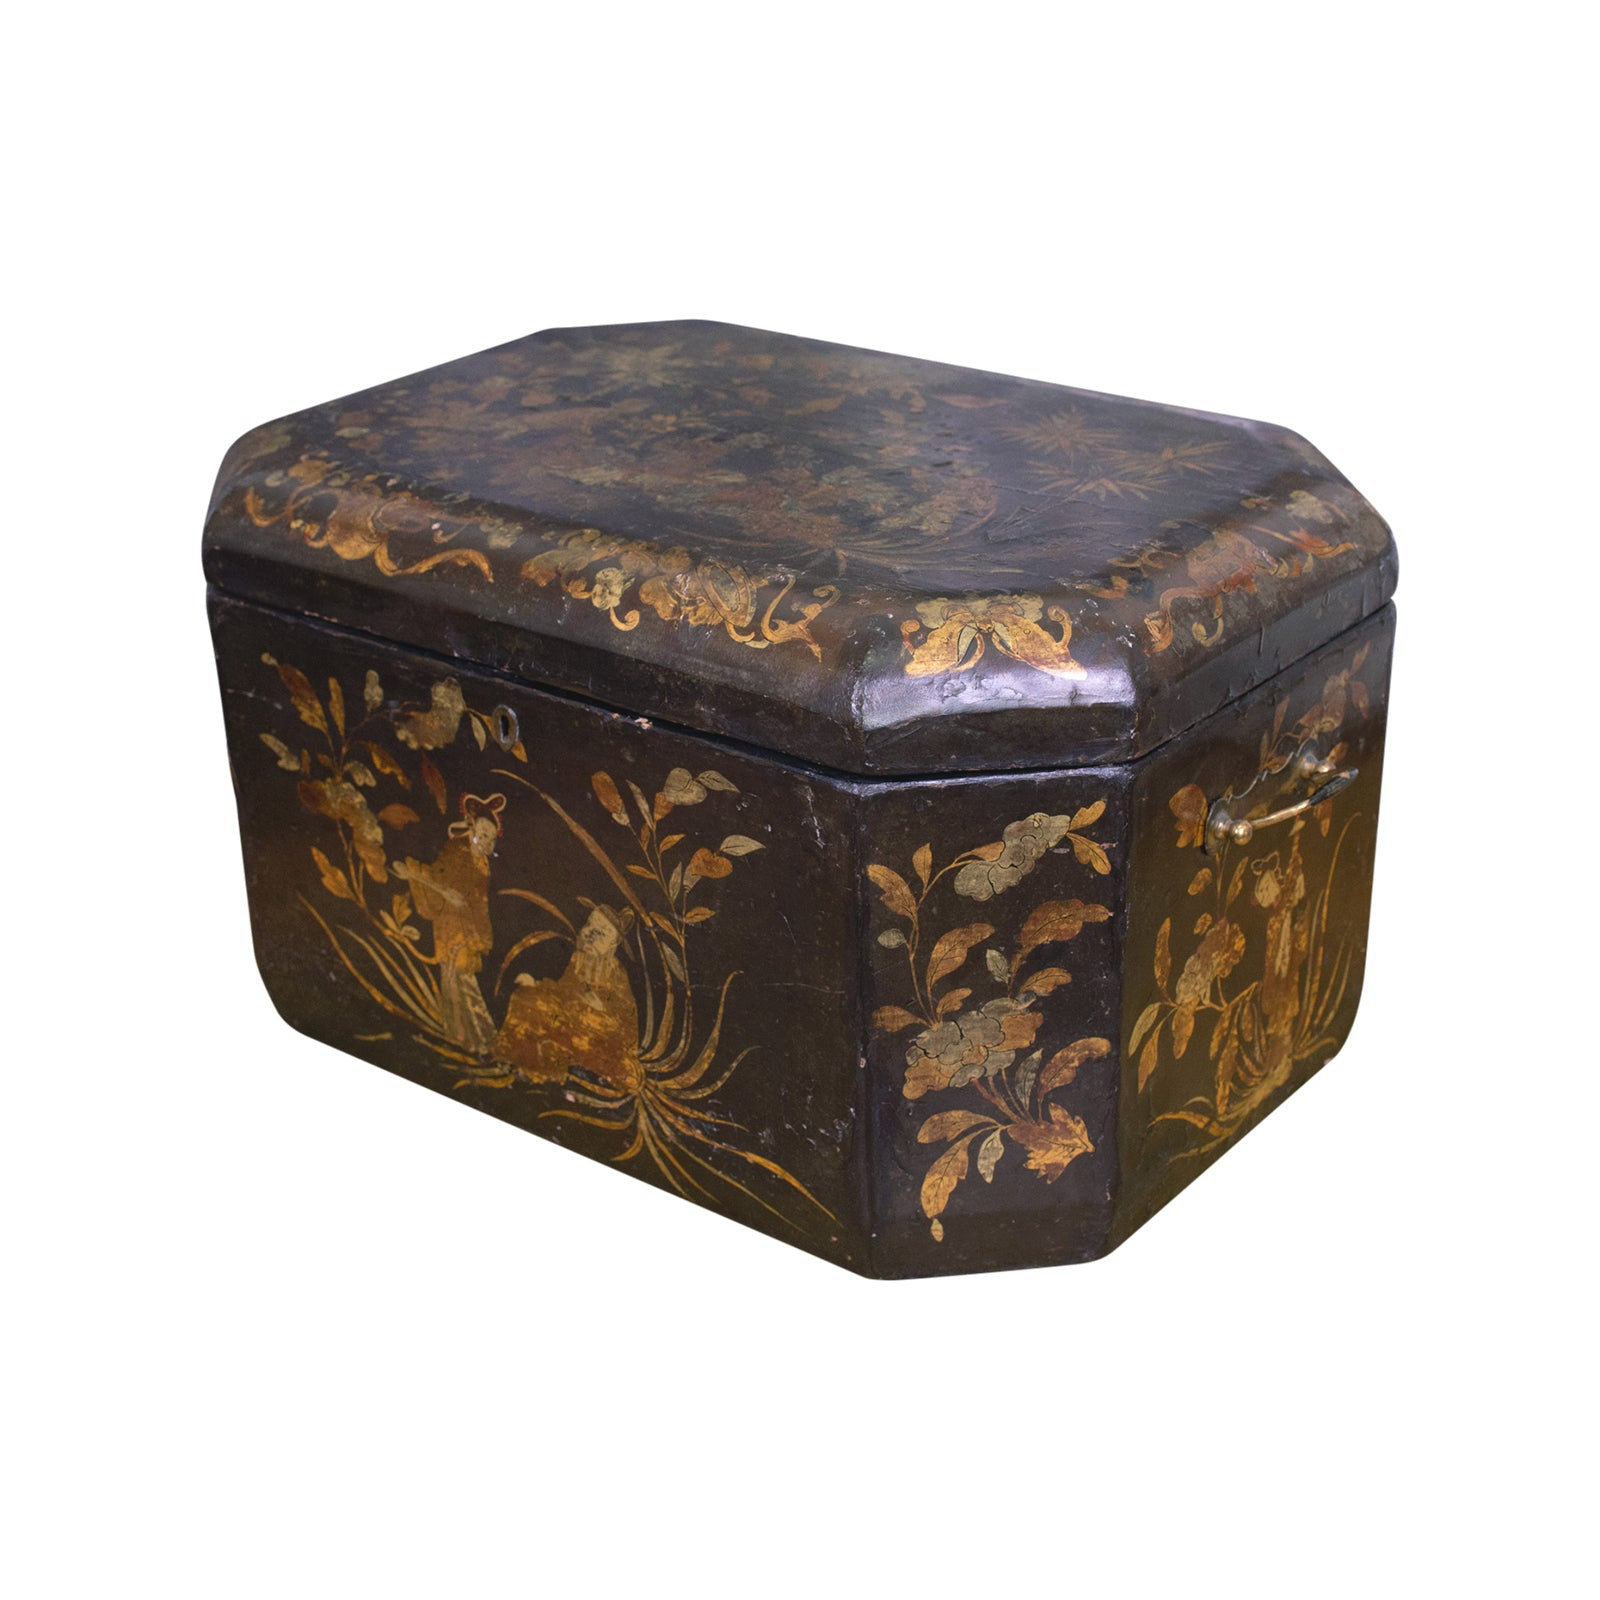 A Large Black Lacquer Chinoiserie Box